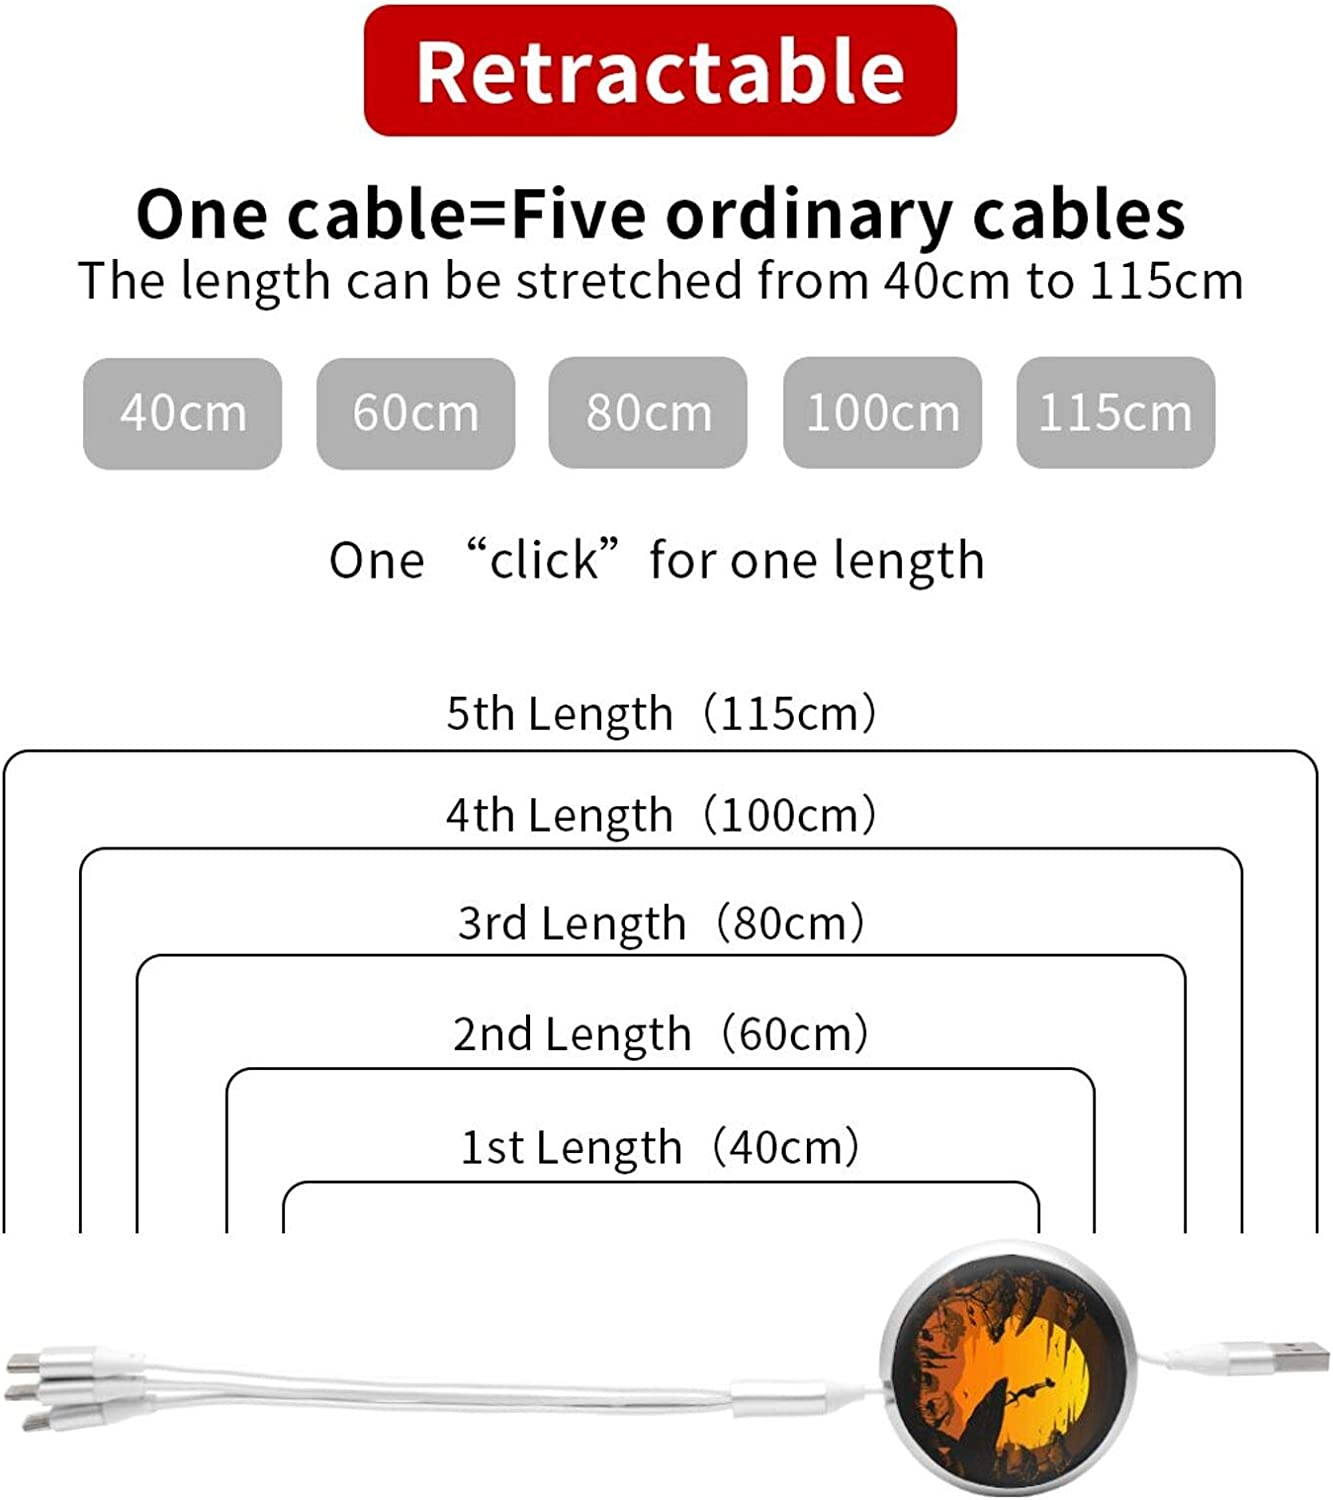 Multi Charging Cable Portable 3 in 1 The Circle of Life USB Cable USB Power Cords for Cell Phone Tablets and More Devices Charging